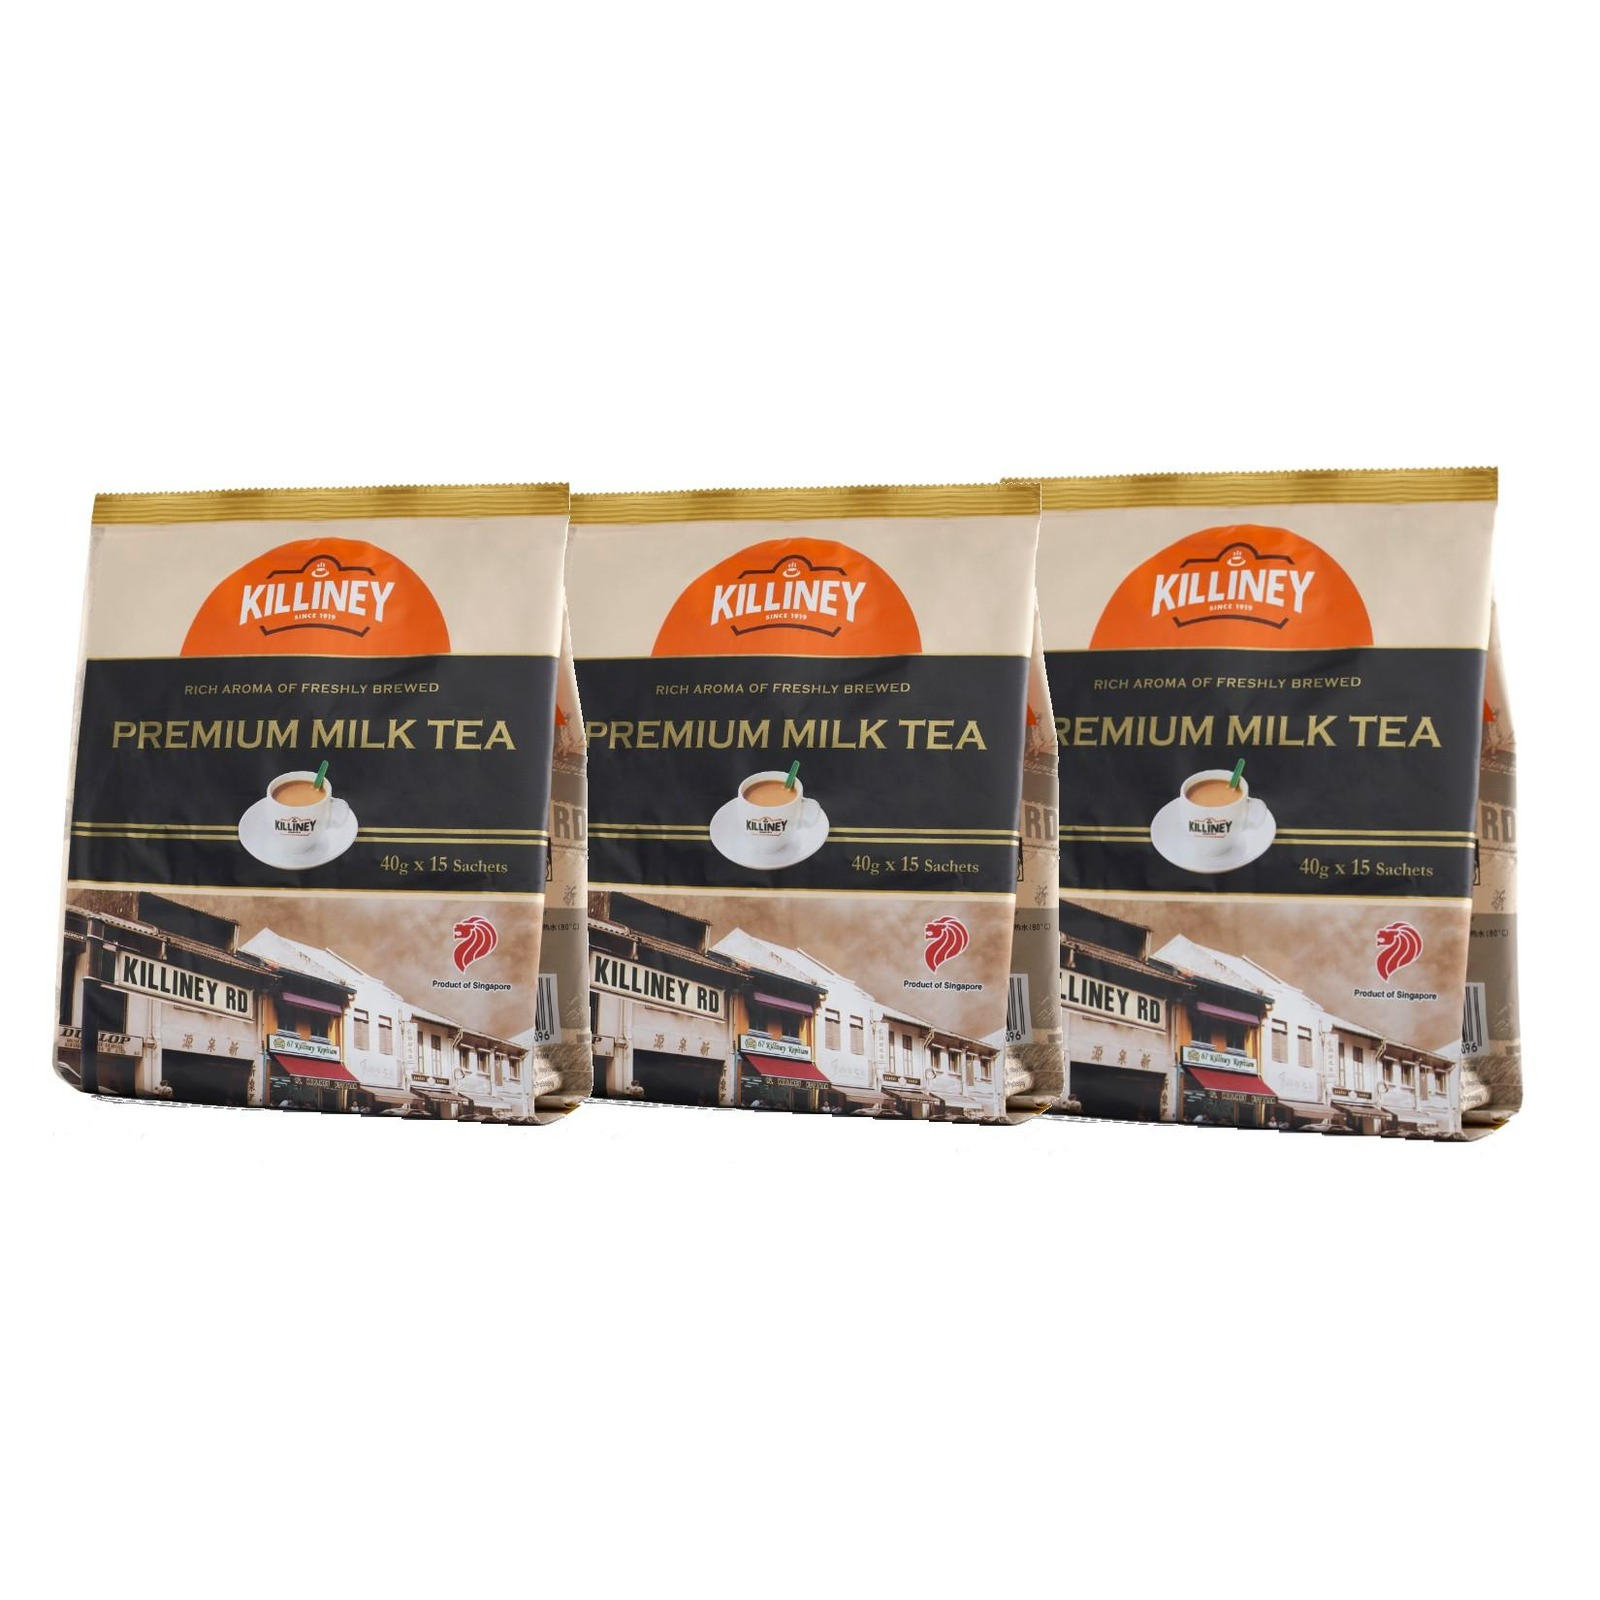 Killiney Premium Milk Tea Trio Bundle